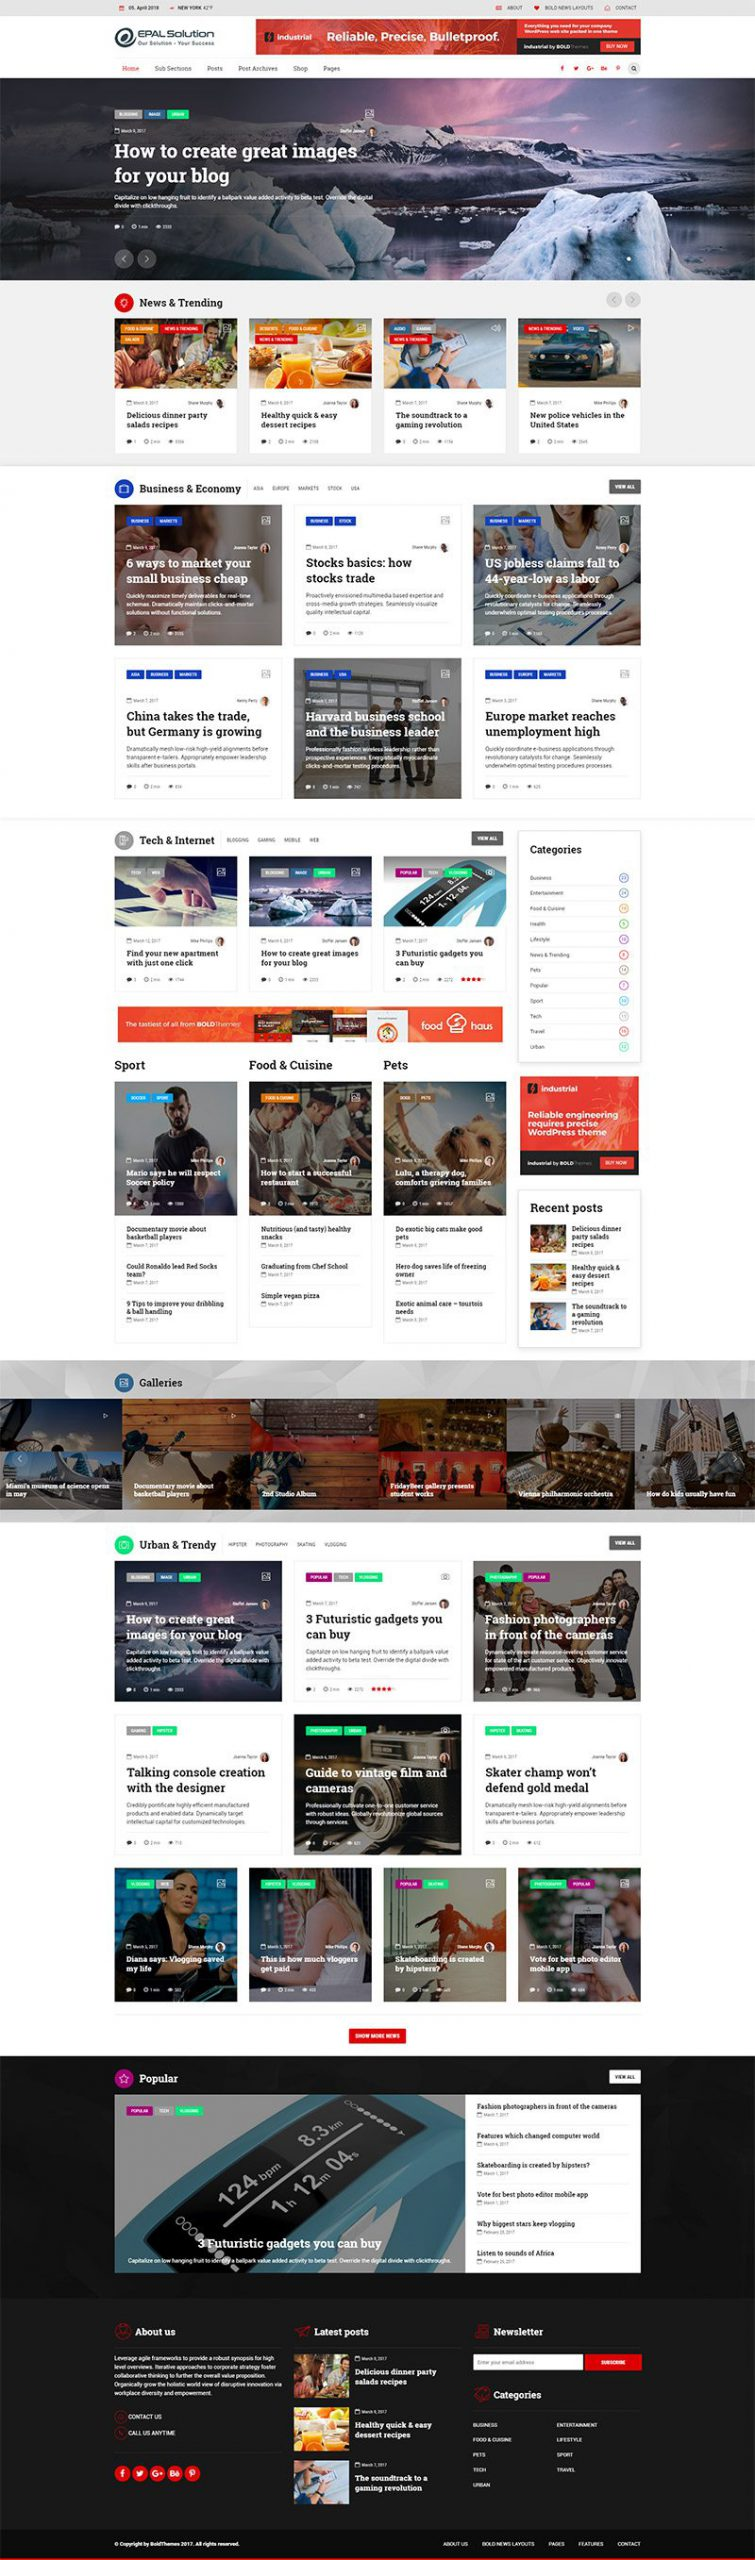 Giao-dien-website-tin-tuc-bold-news